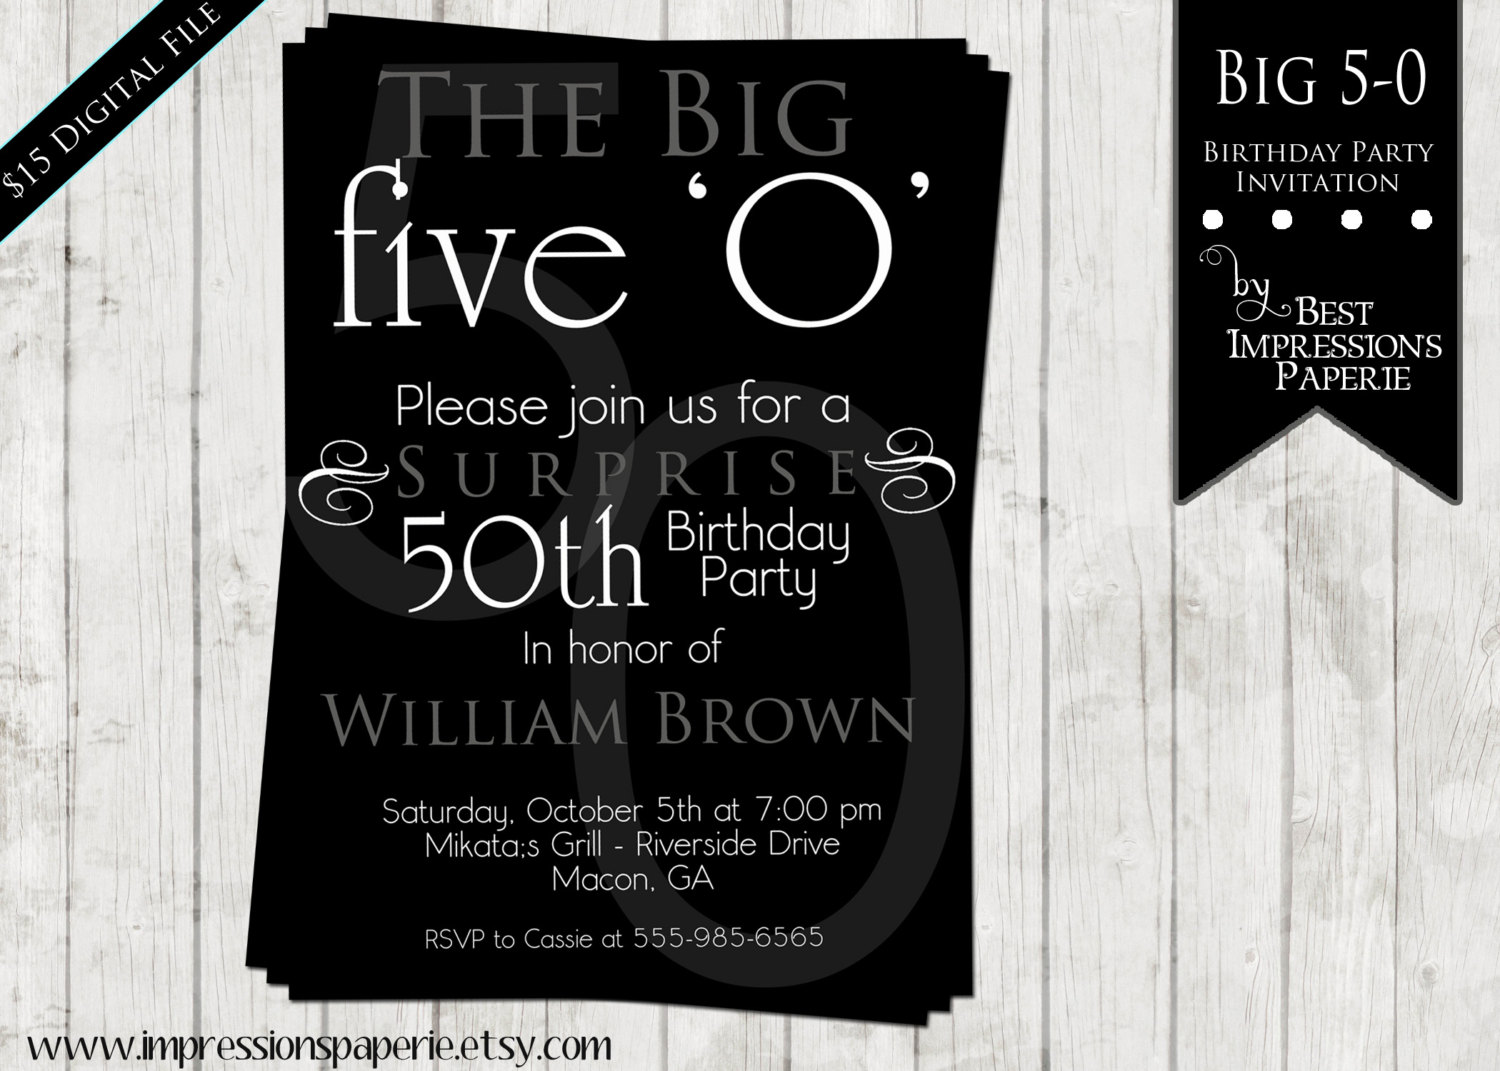 50th birthday party invitations free printable juve 50th birthday party invitations free printable fiftieth birthday invitations free printable 50th birthday fiftieth filmwisefo